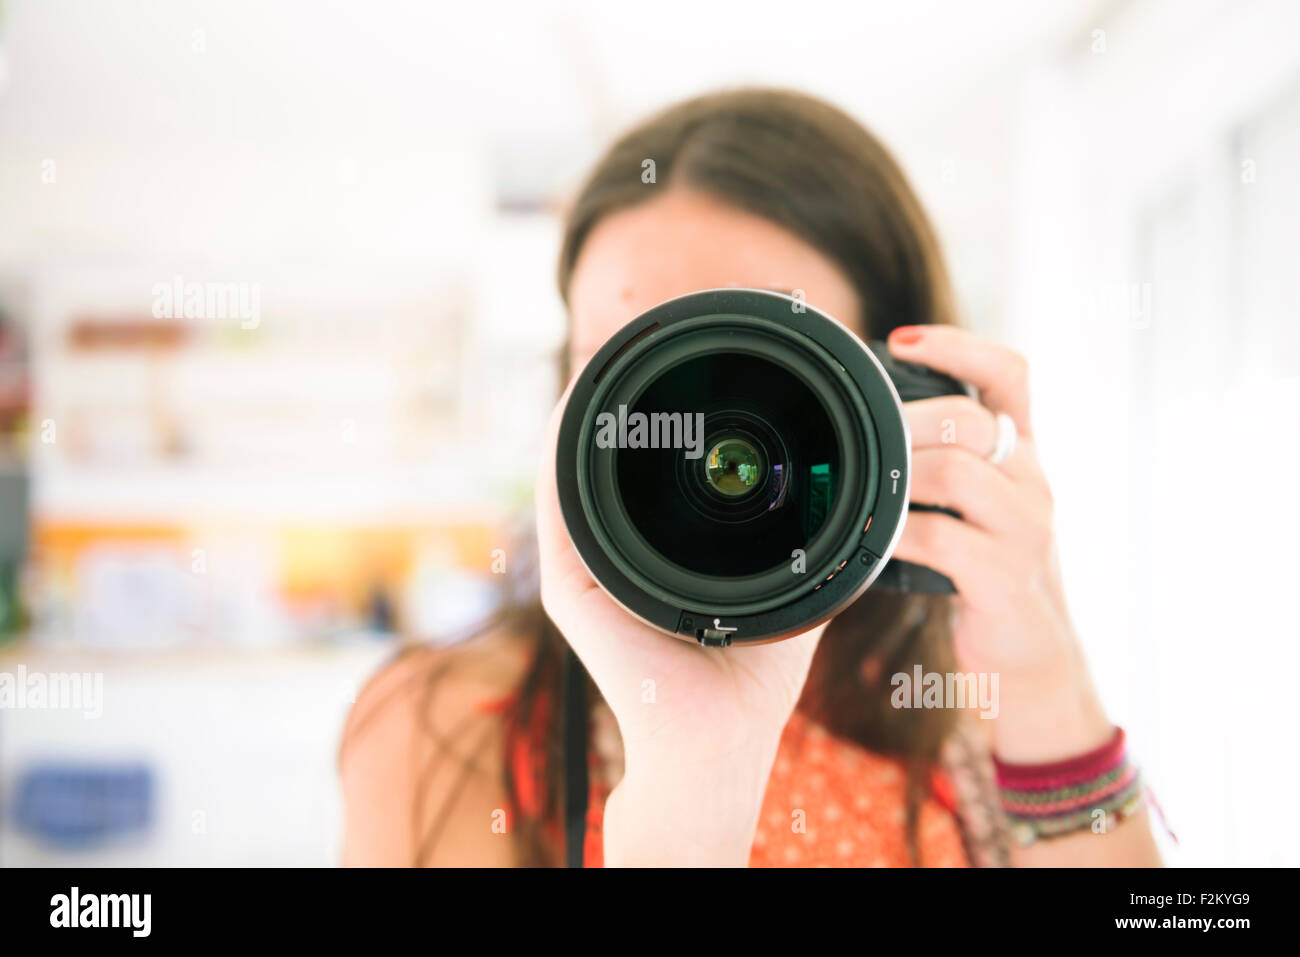 Woman taking a photo with a camera - Stock Image